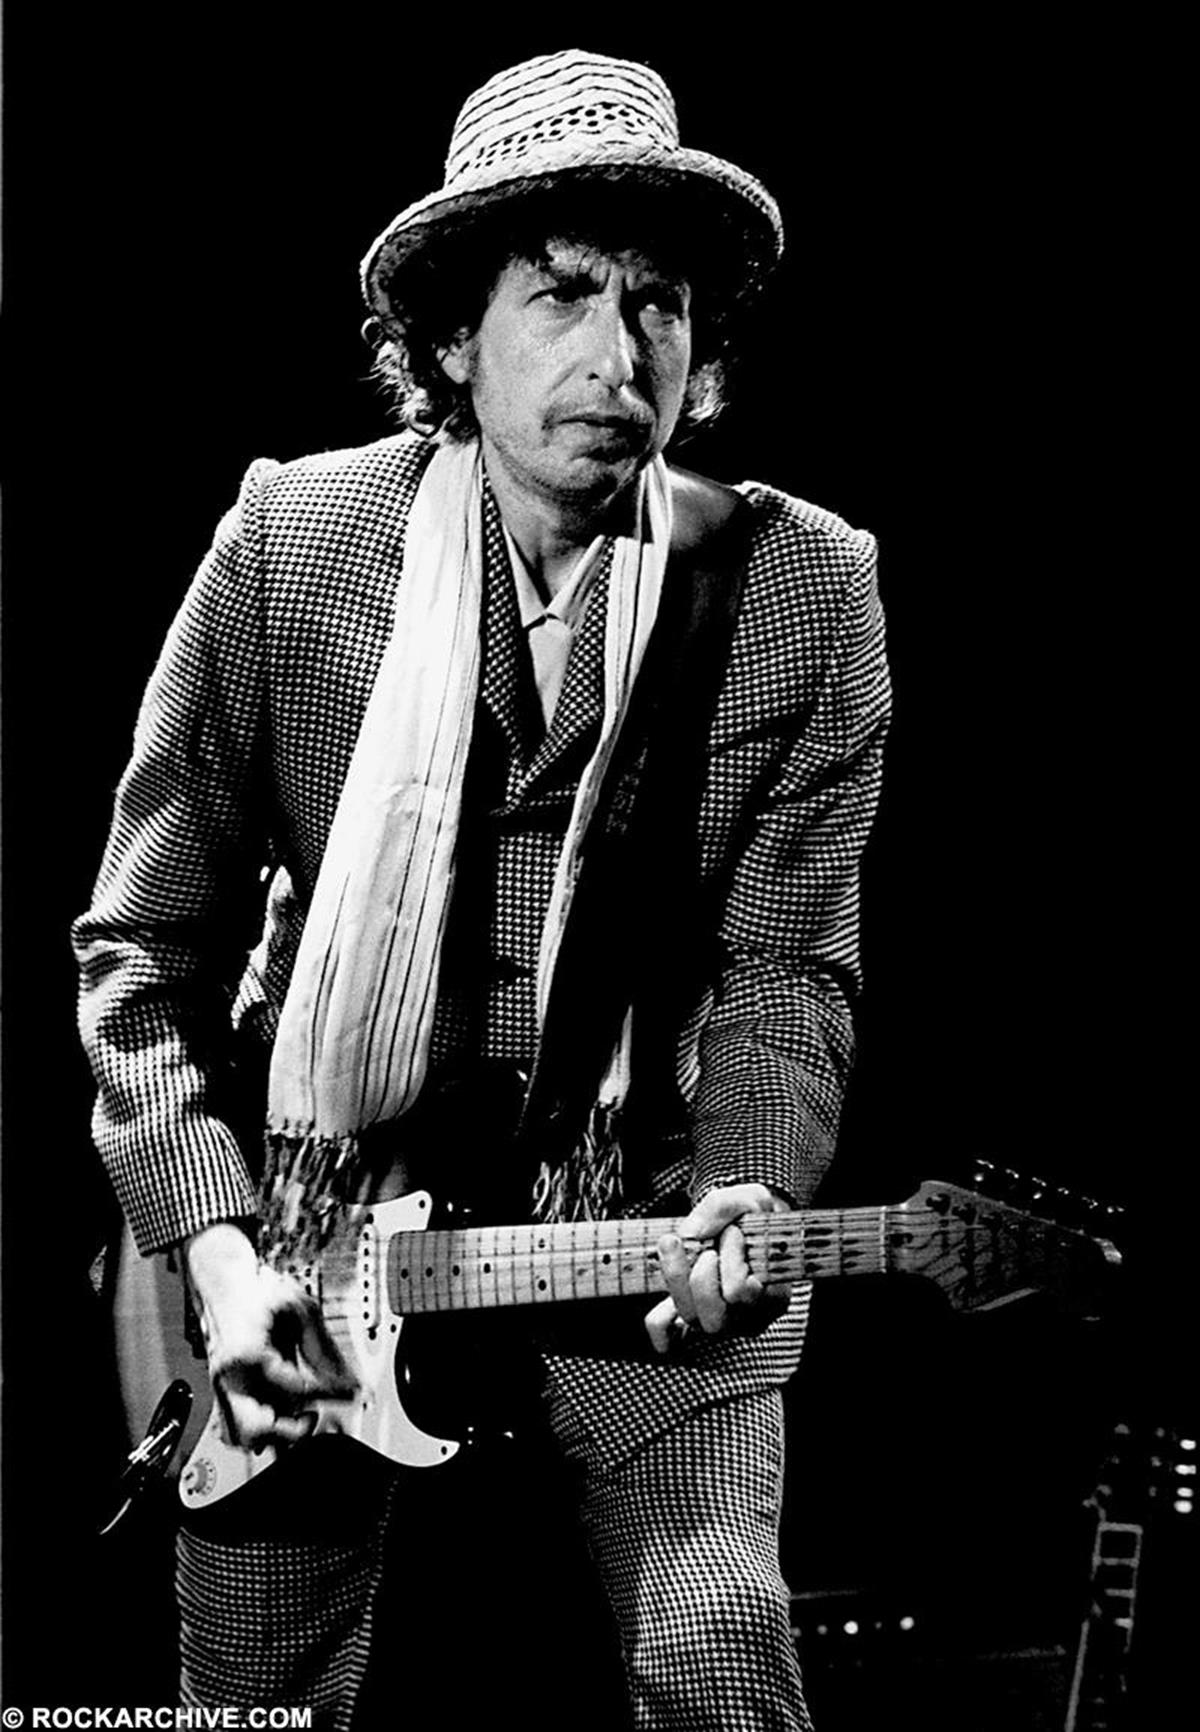 Bob Dylan performing onstage at the Arena Civica di Milano, Milan, Italy while on the 'Temples in Flames Tour'. He was supported on the tour by Tom Petty and the Heartbreakers. © Lex Van Rossen